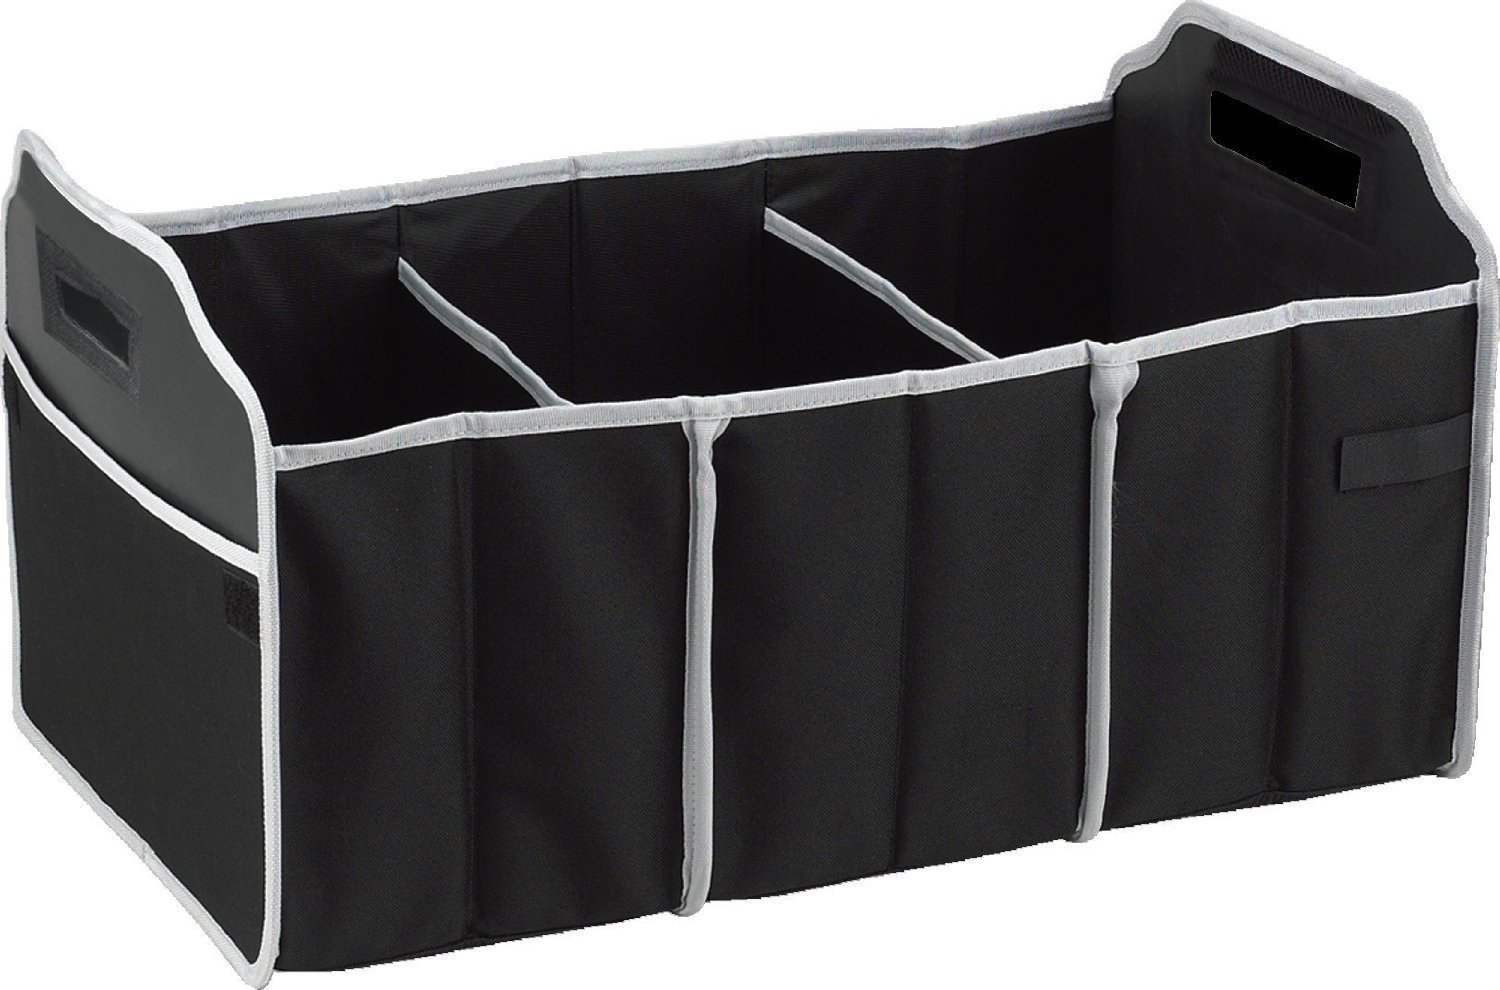 Foldable cartrunk organizer with cooler 15